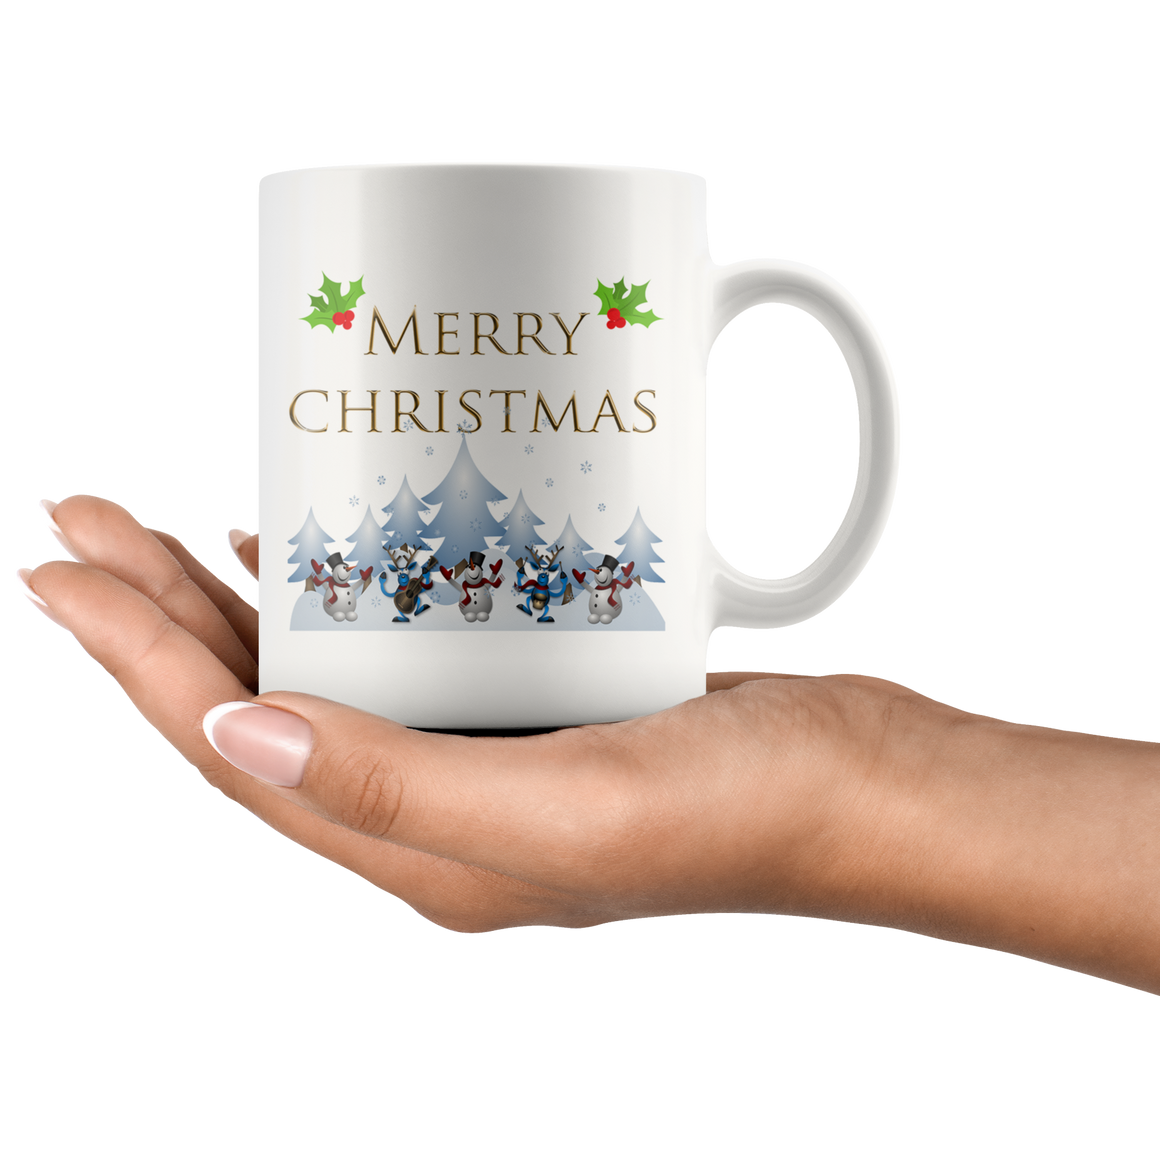 Cute White 11oz Merry Christmas Coffee Mug